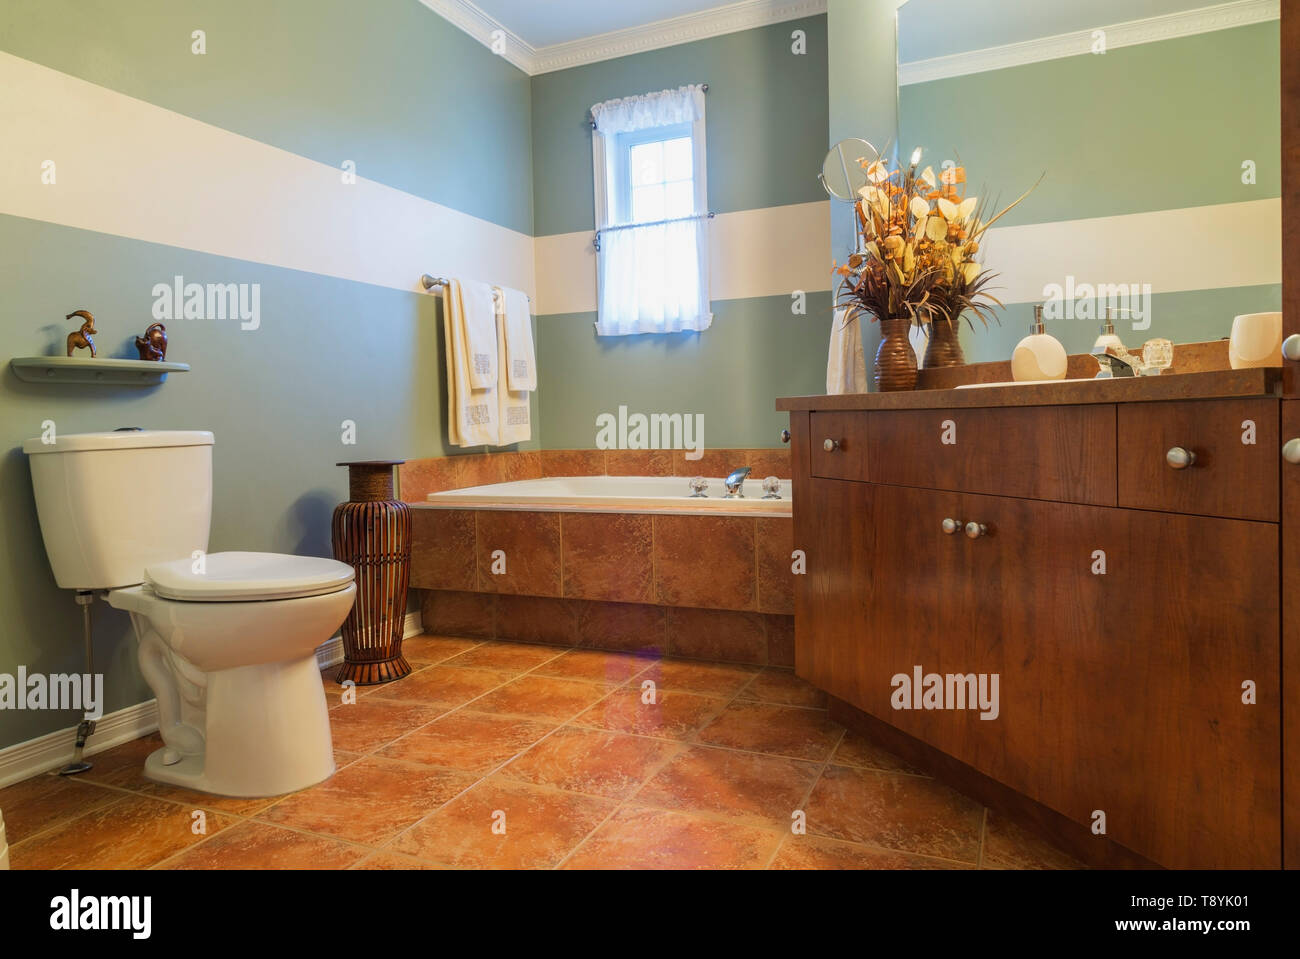 Bathroom Cabinet Country Photos & Bathroom Cabinet Country Images ...